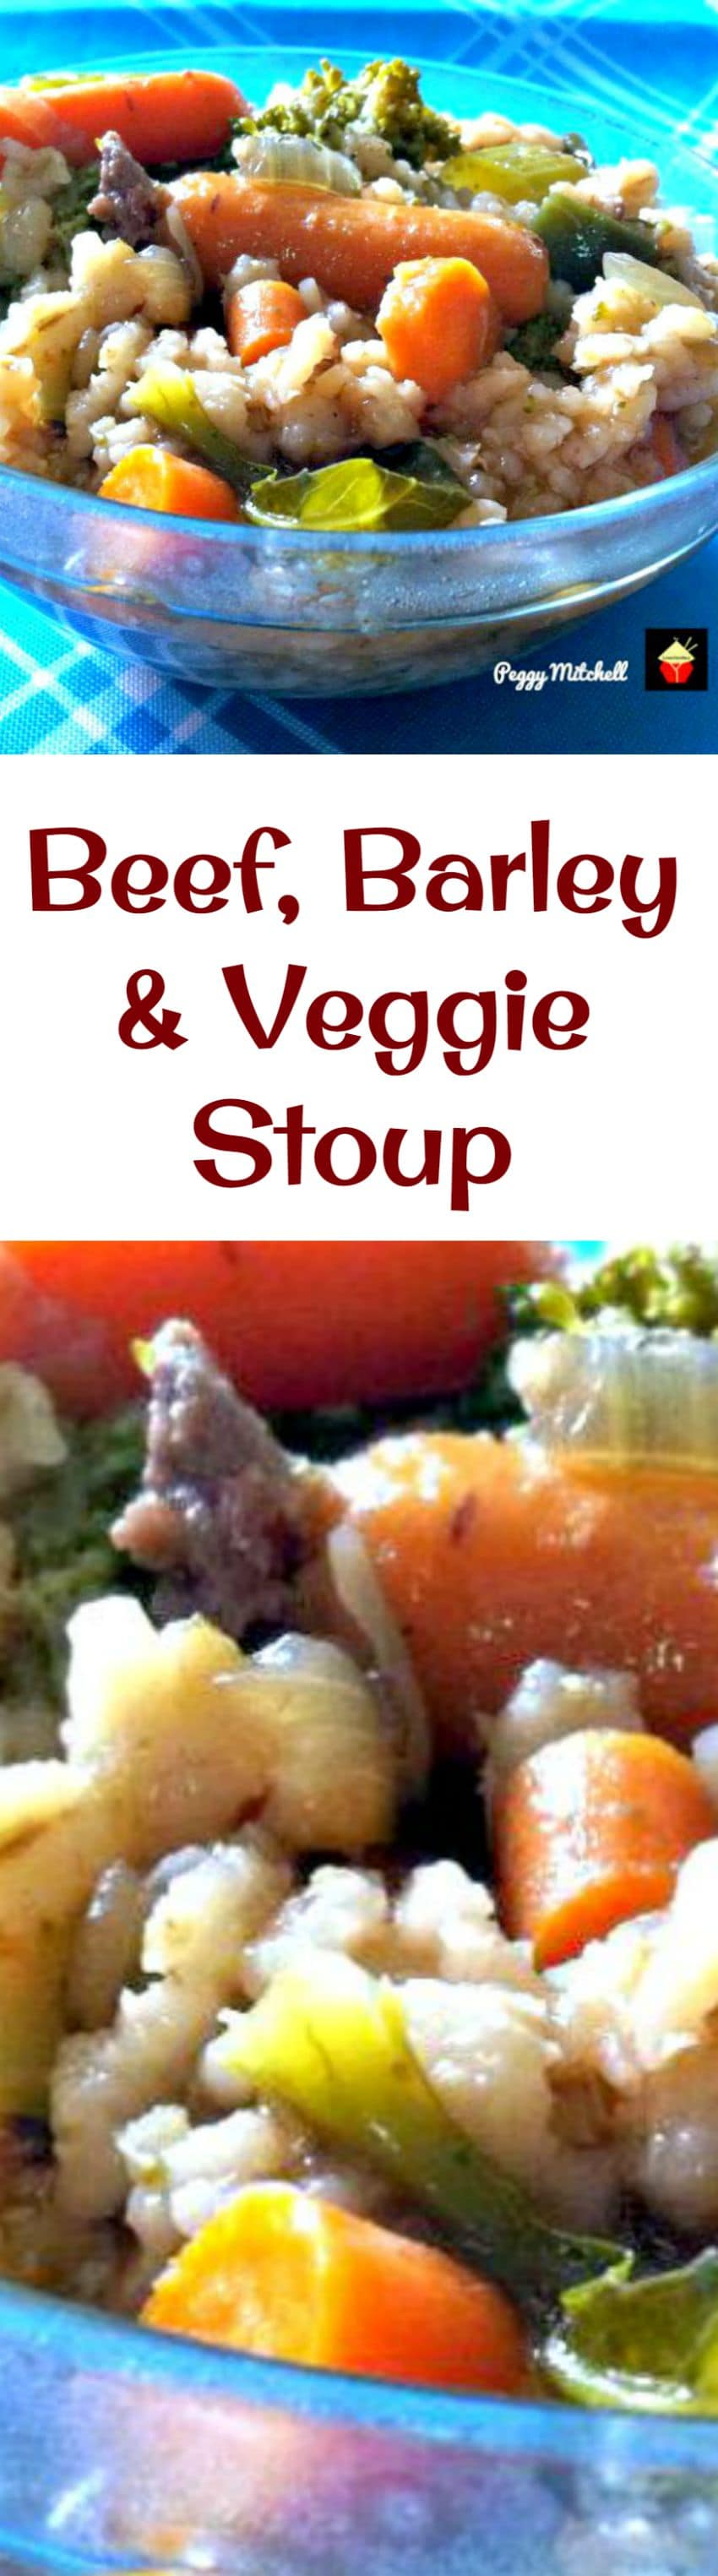 Beef, Barley and Veggie Stoup is a stew soup!  Full of lovely fresh ingredients and very easy to make. A real Winter warmer!